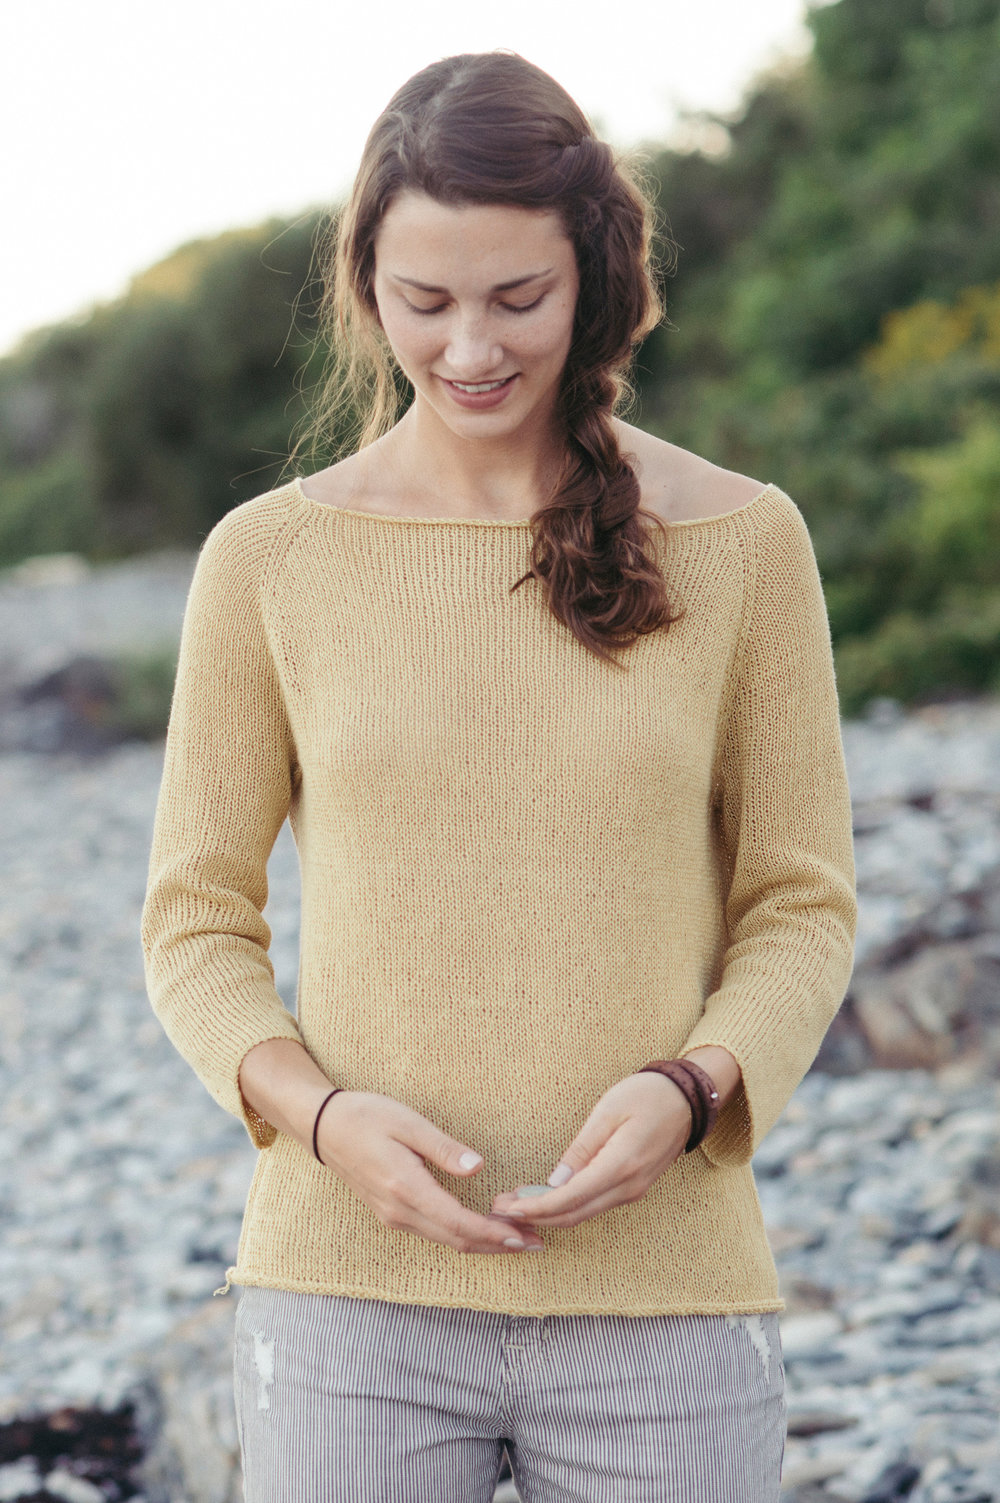 quince-co-gillespie-cecily-glowik-macdonald-knitting-pattern-sparrow-1.jpg